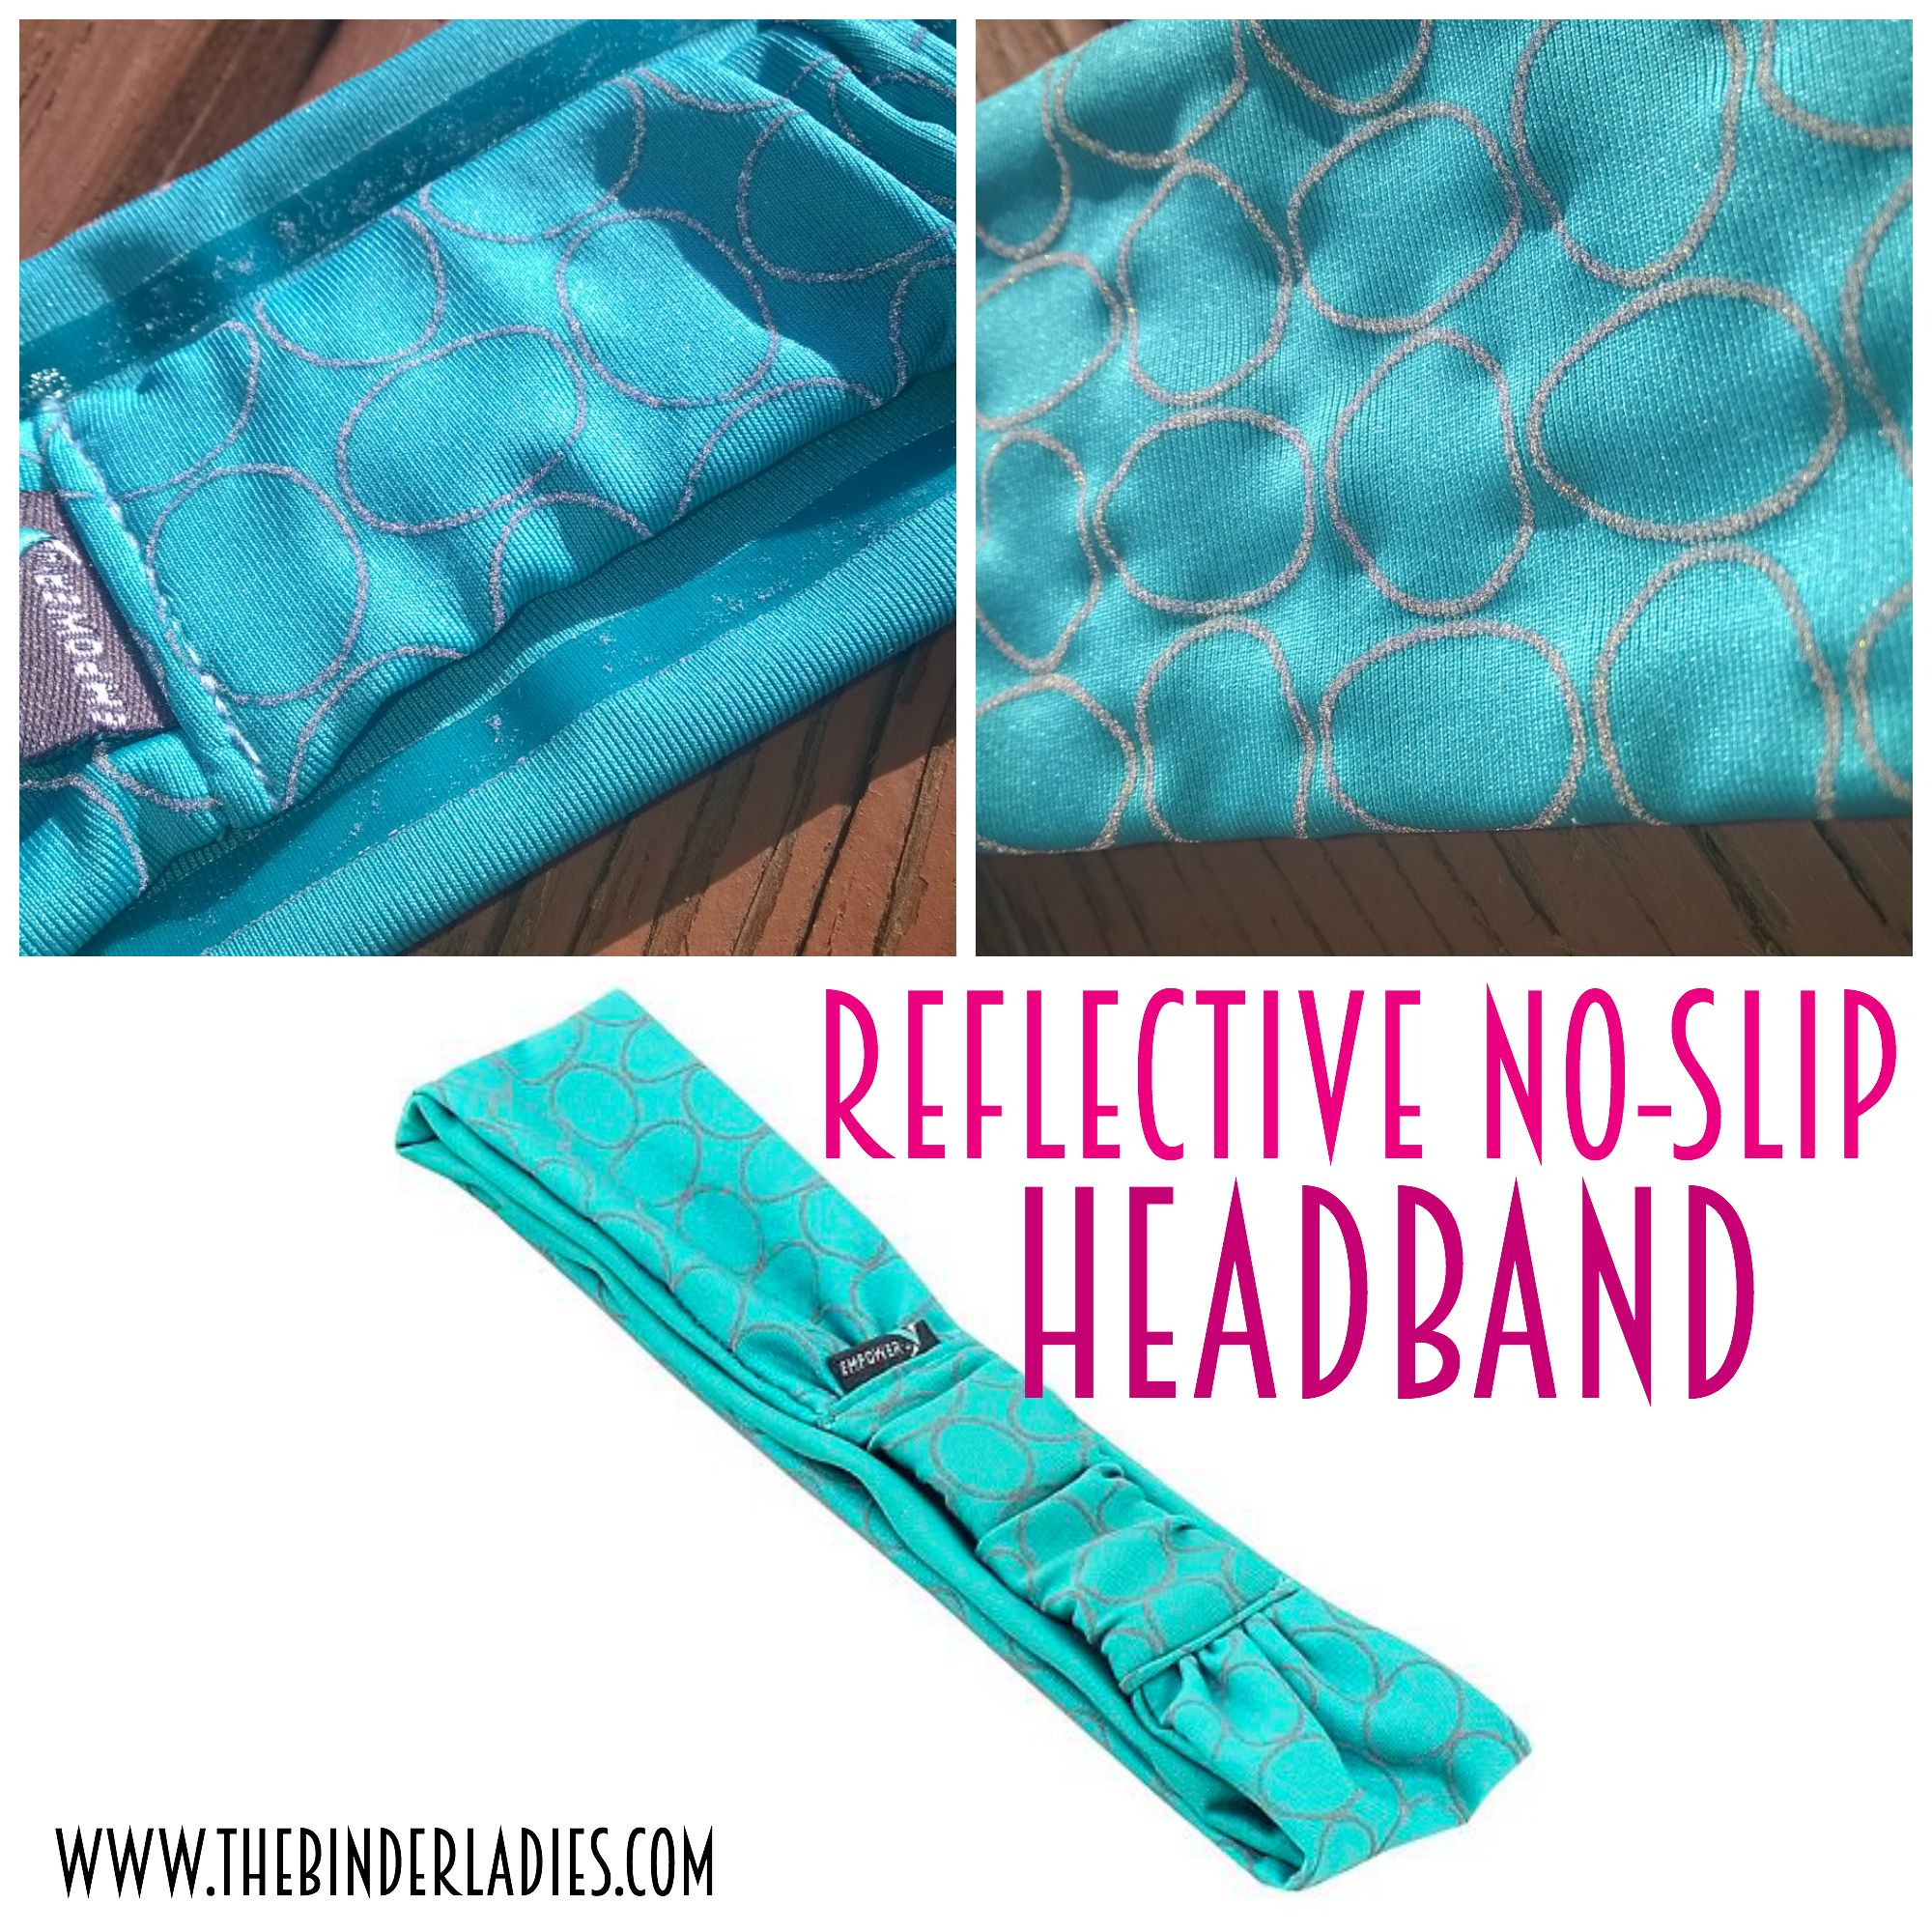 Reflective No-Slip Headband from Empower Fitness - workout products ...